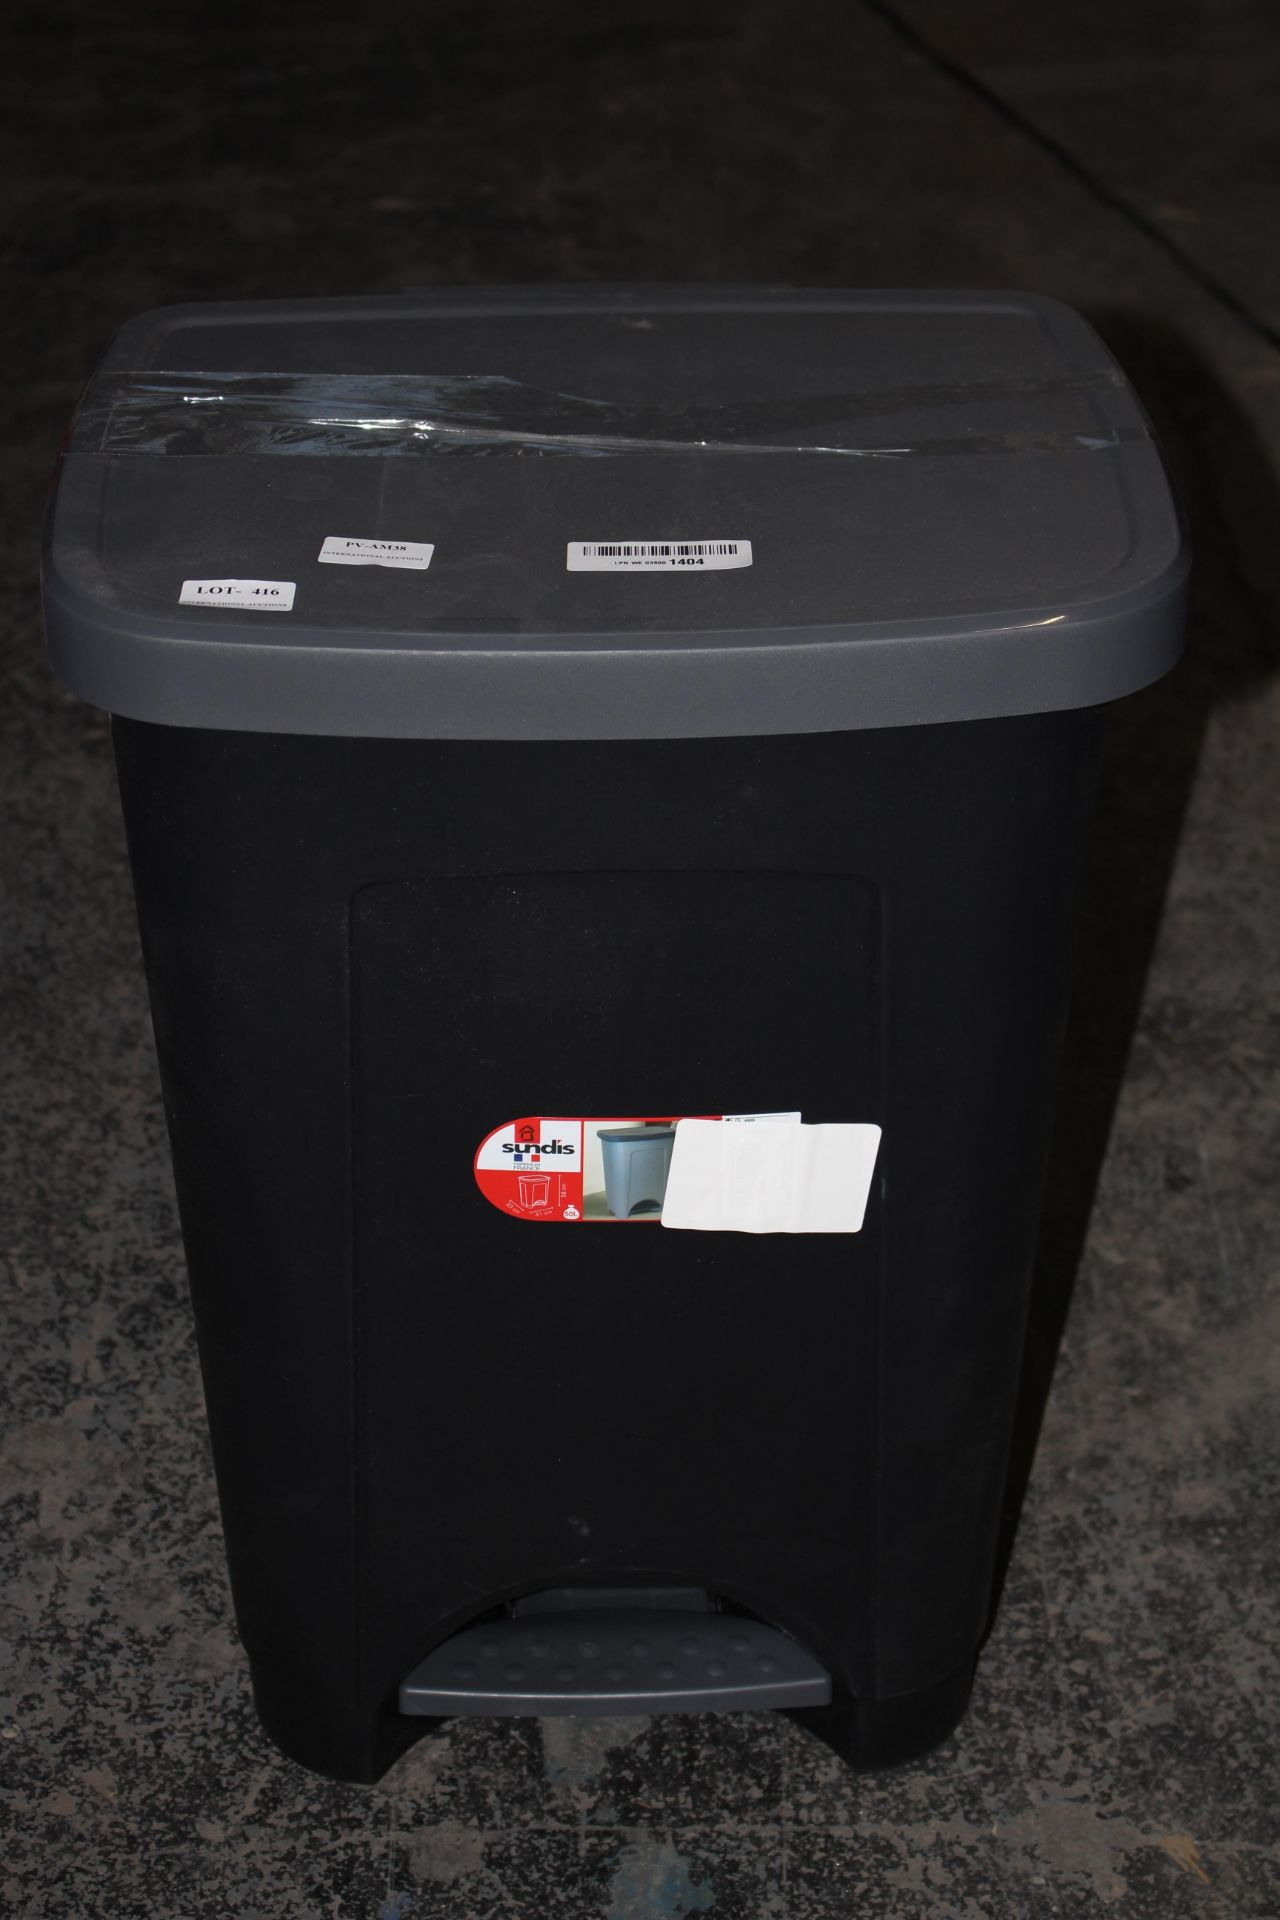 UNBOXED SUNDIS PEDAL BIN RRP £29.99Condition ReportAppraisal Available on Request- All Items are